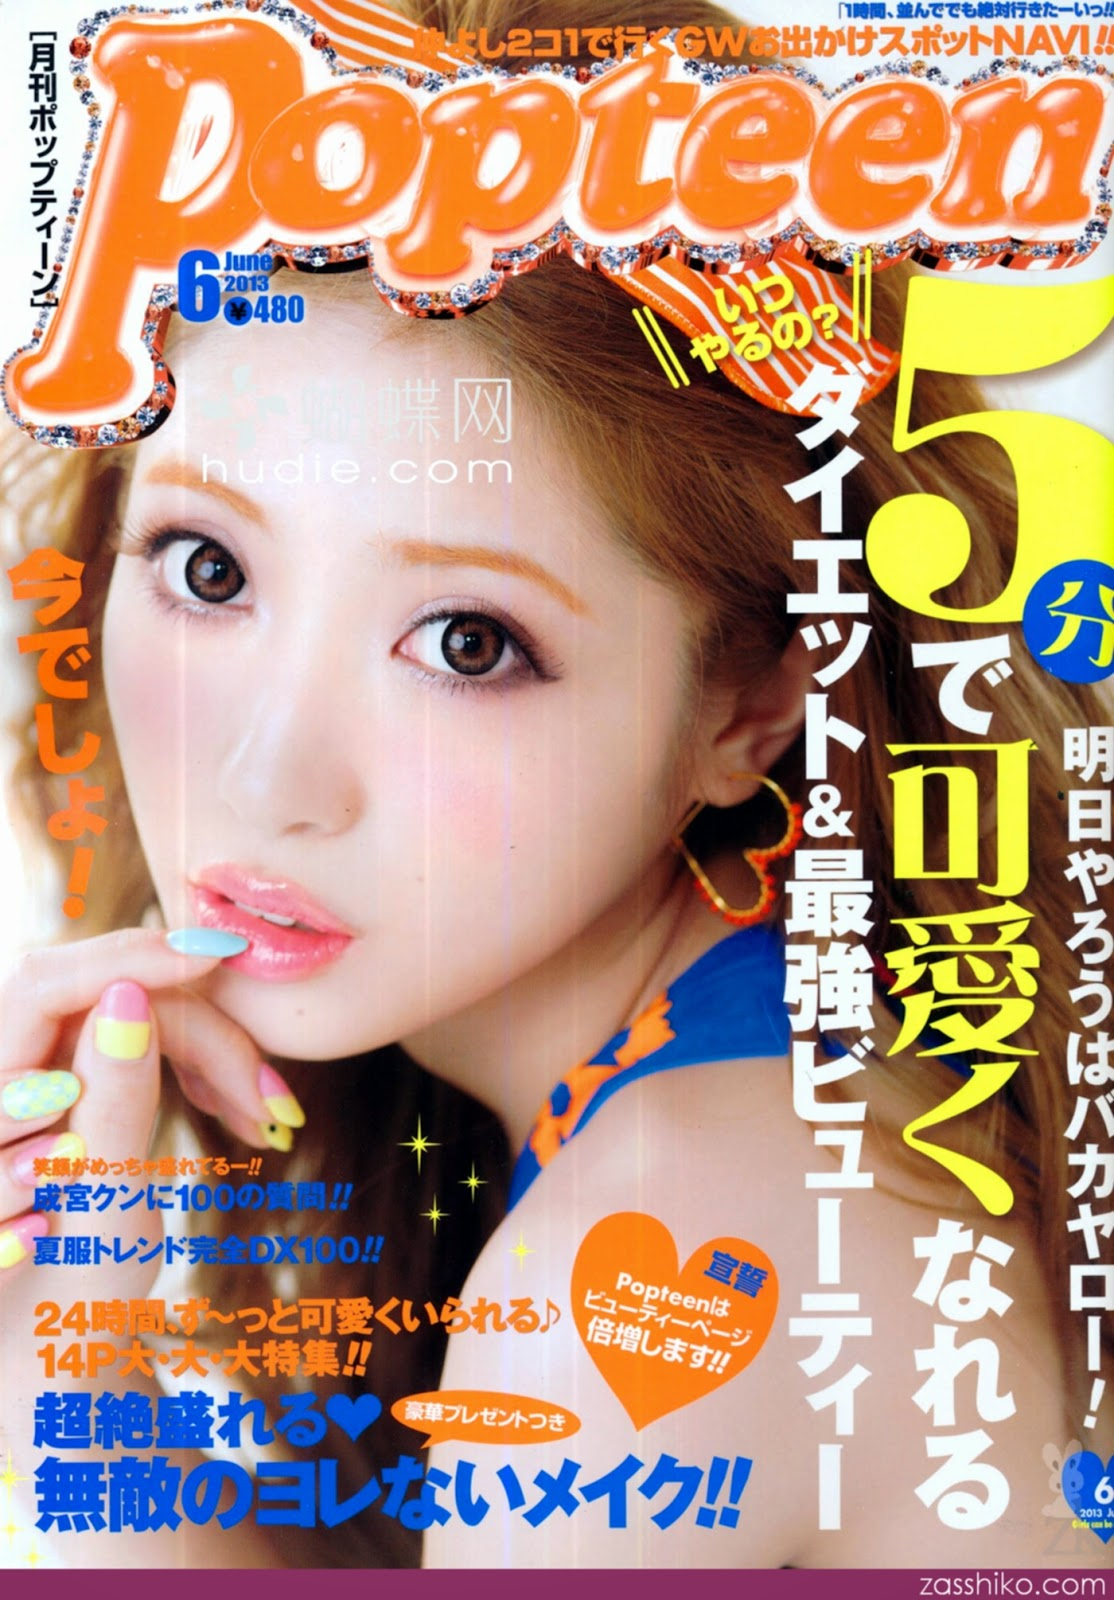 Scans | Popteen June 2013